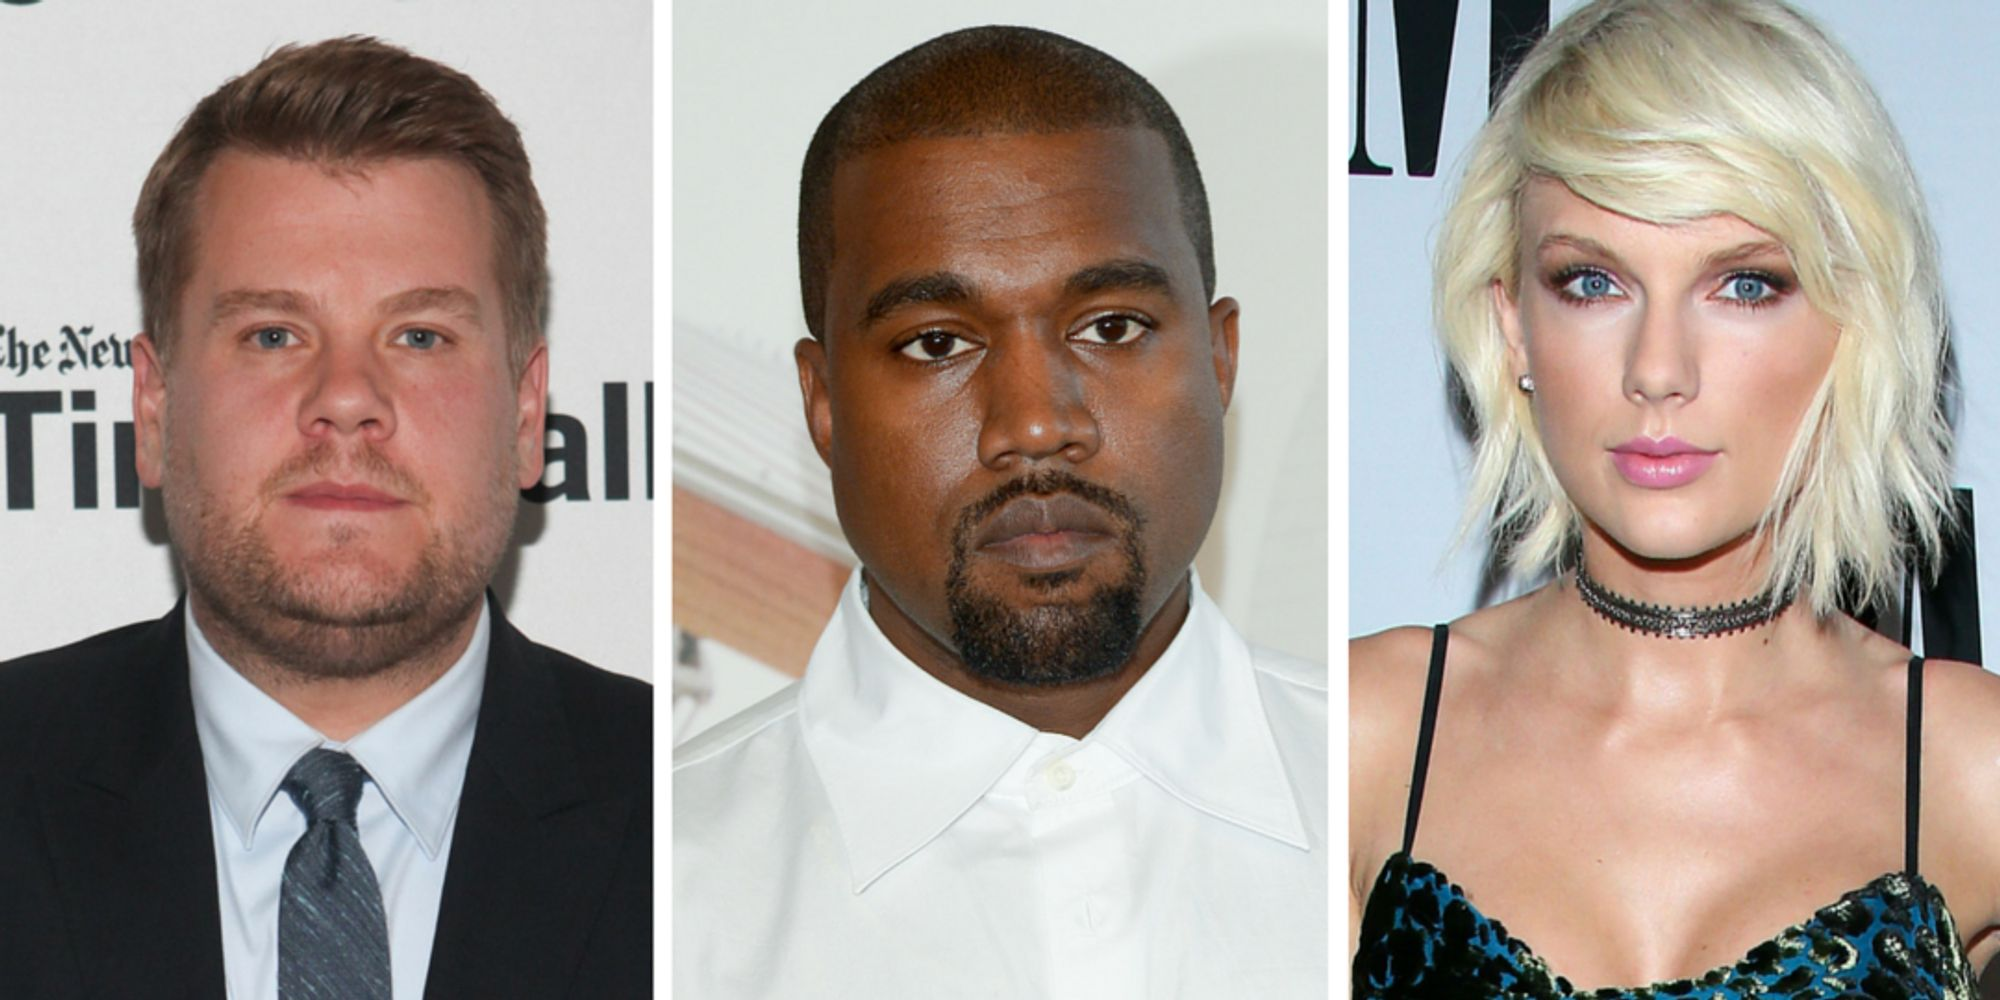 James Corden Hilariously Inserts Himself Into The Kim K, Kanye And Taylor Swift Narrative